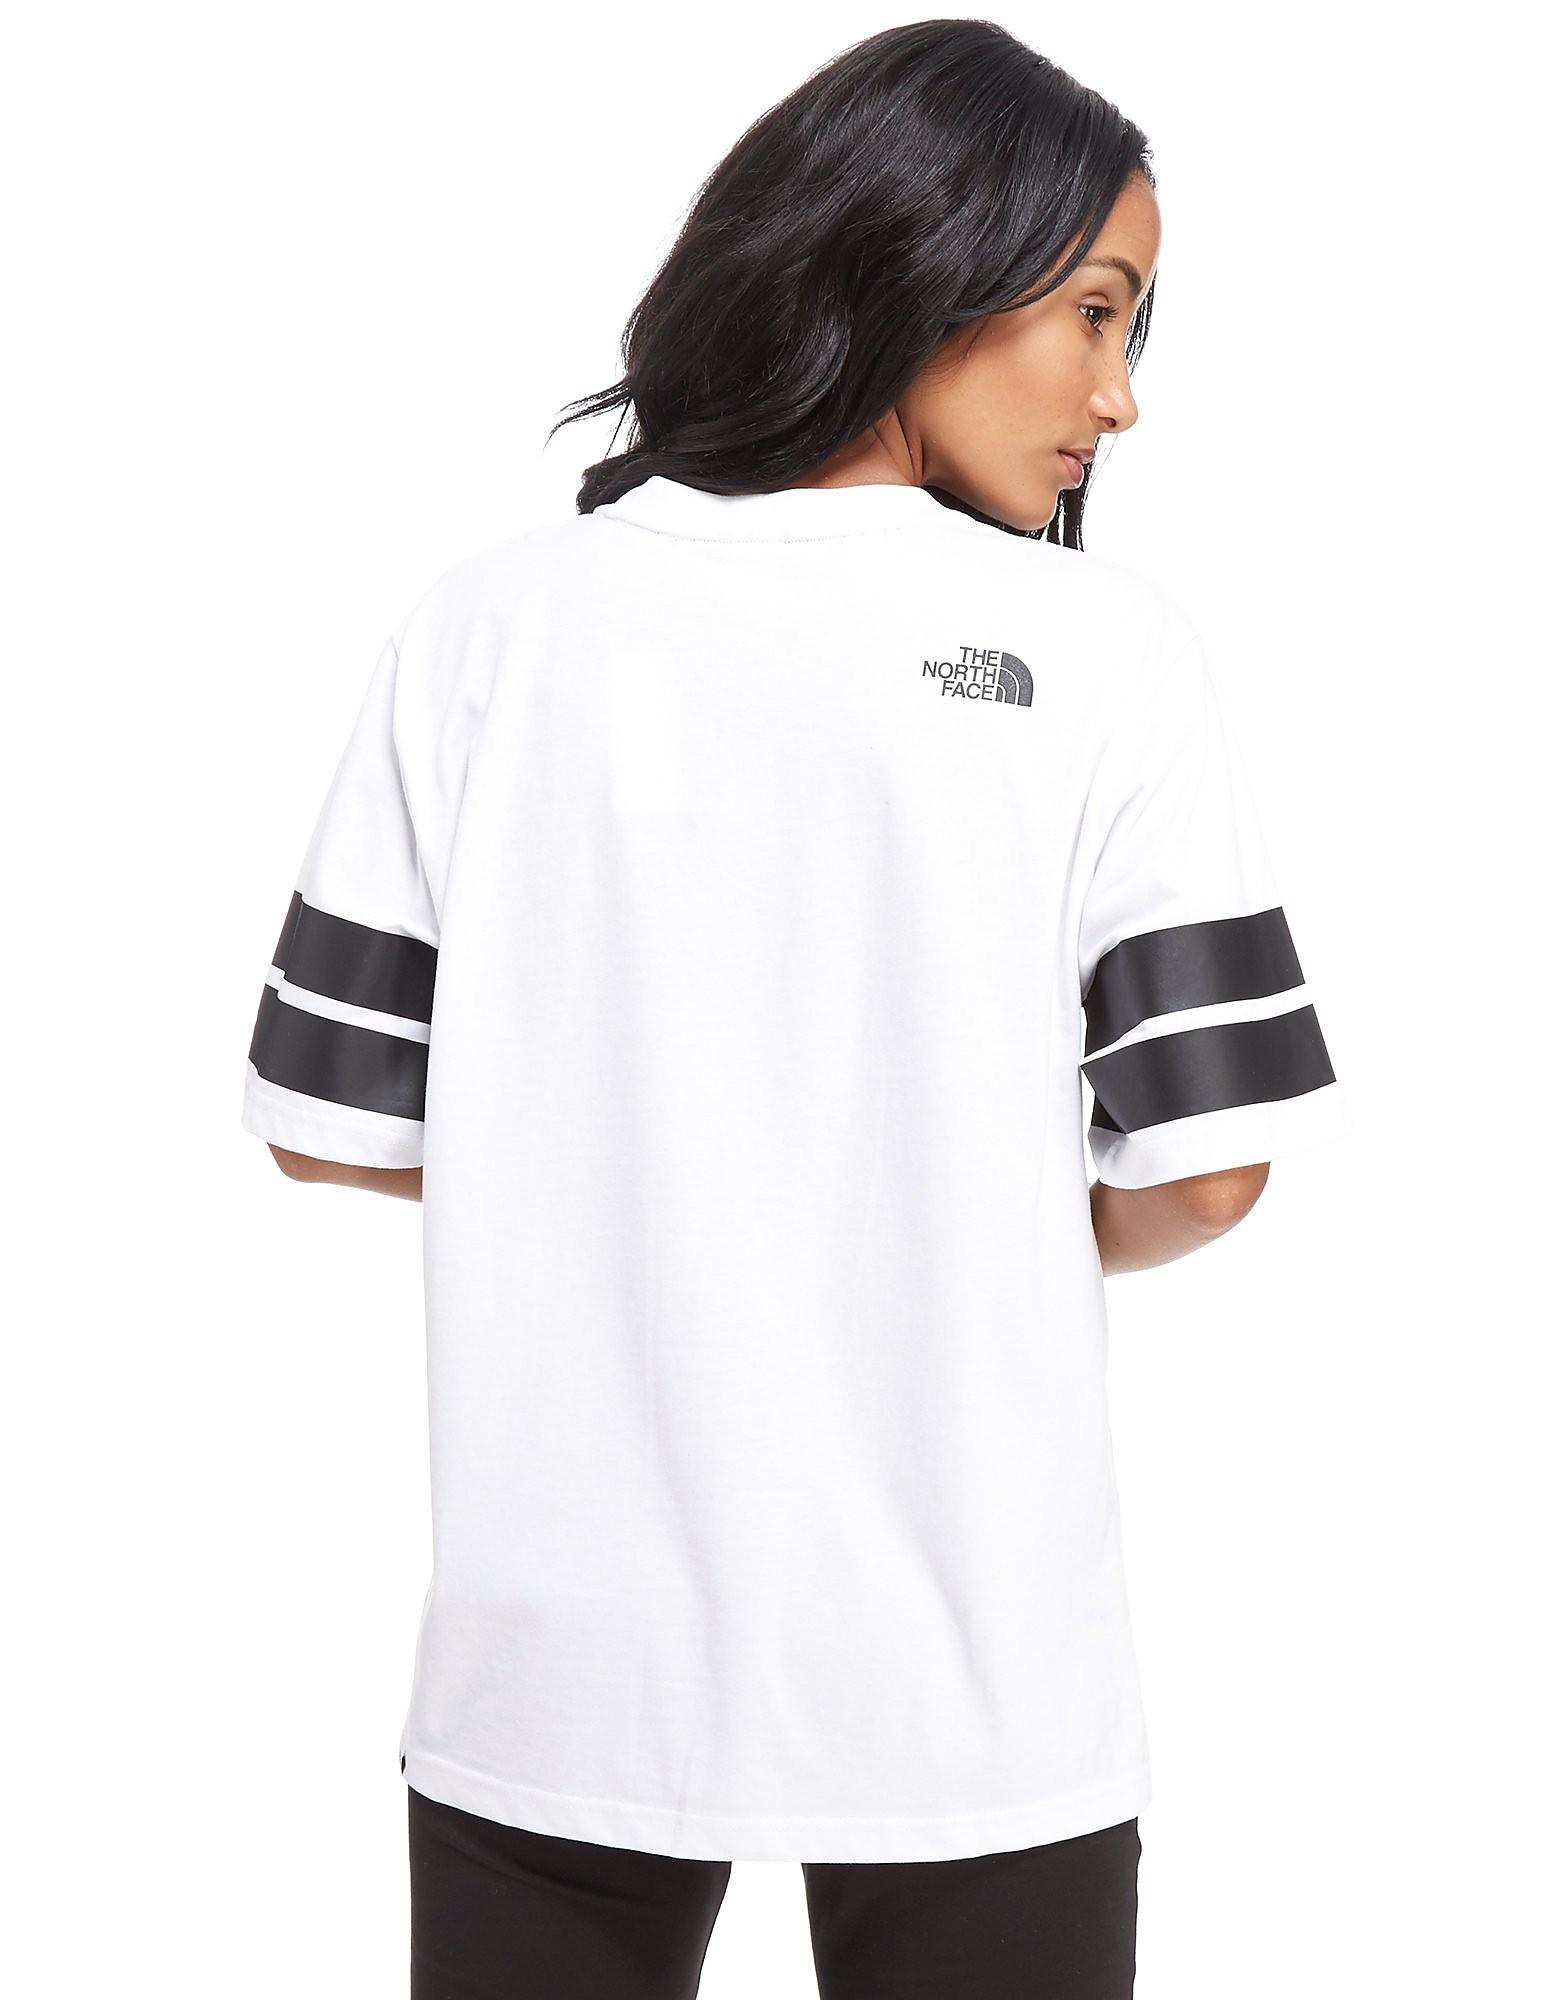 The North Face Stripe Sleeve T-Shirt